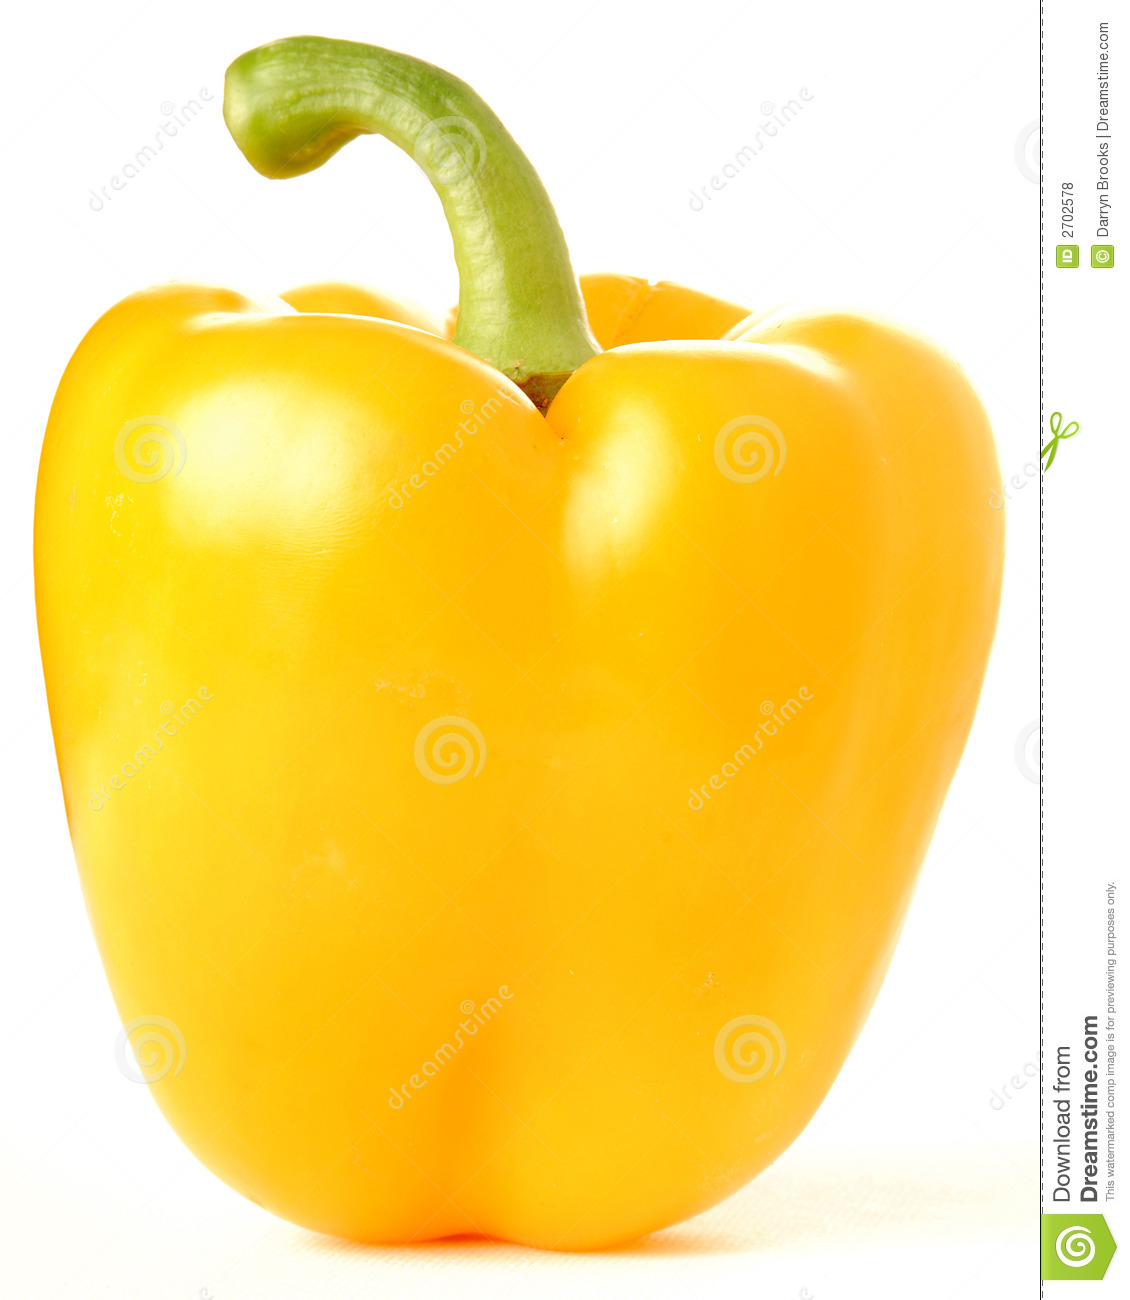 Yellow pepper clipart.